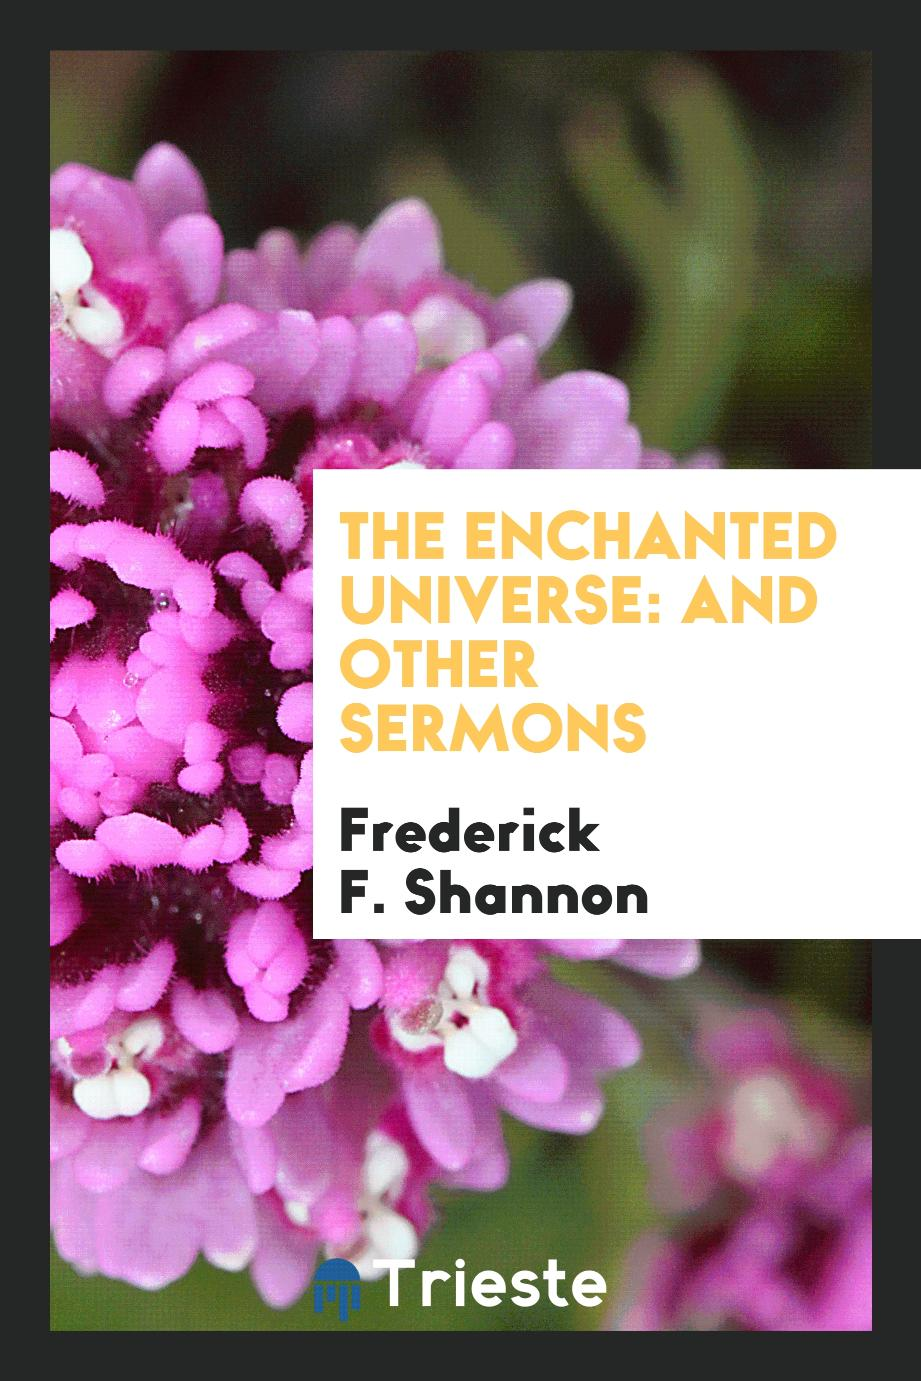 The Enchanted Universe: And Other Sermons